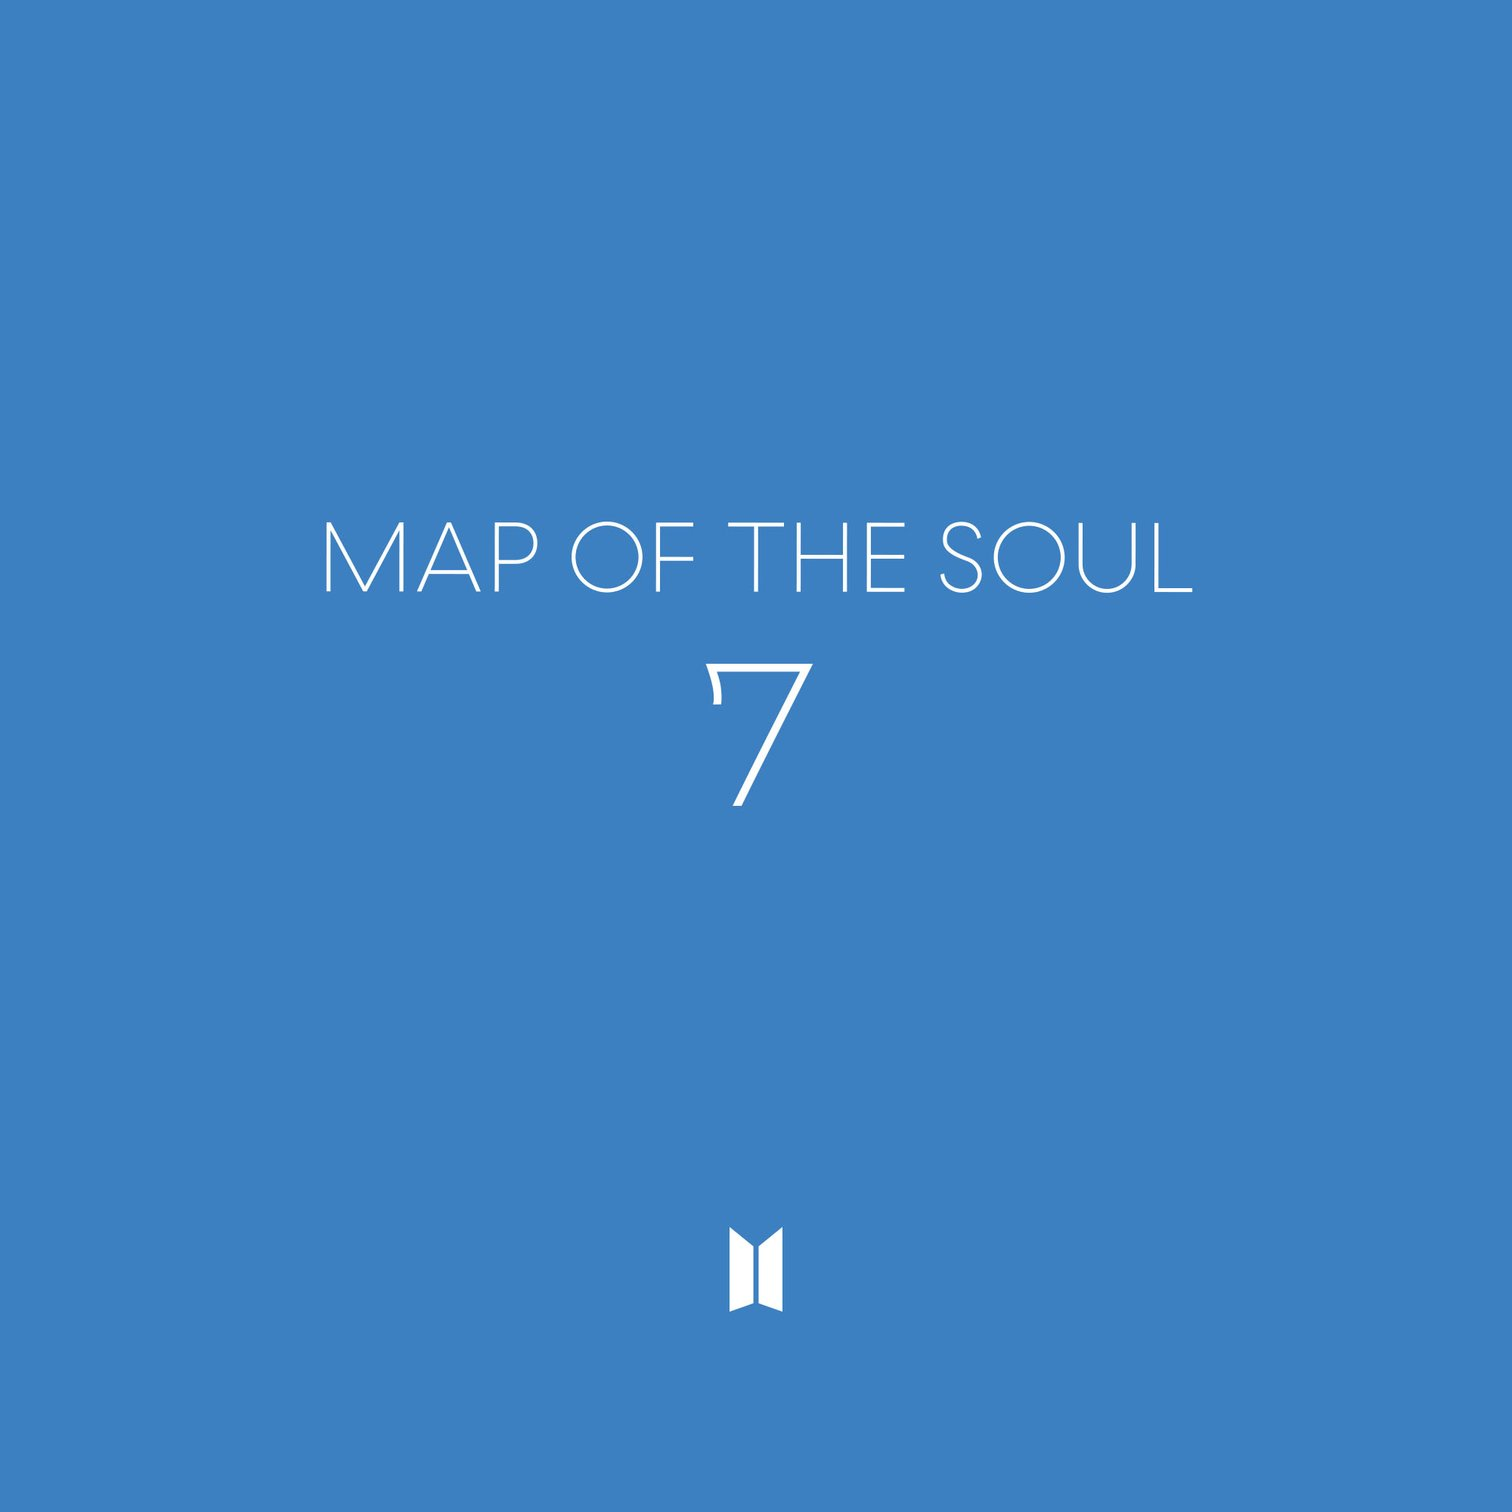 BTS Official Merch Map Of The Soul: 7, Where to Buy?